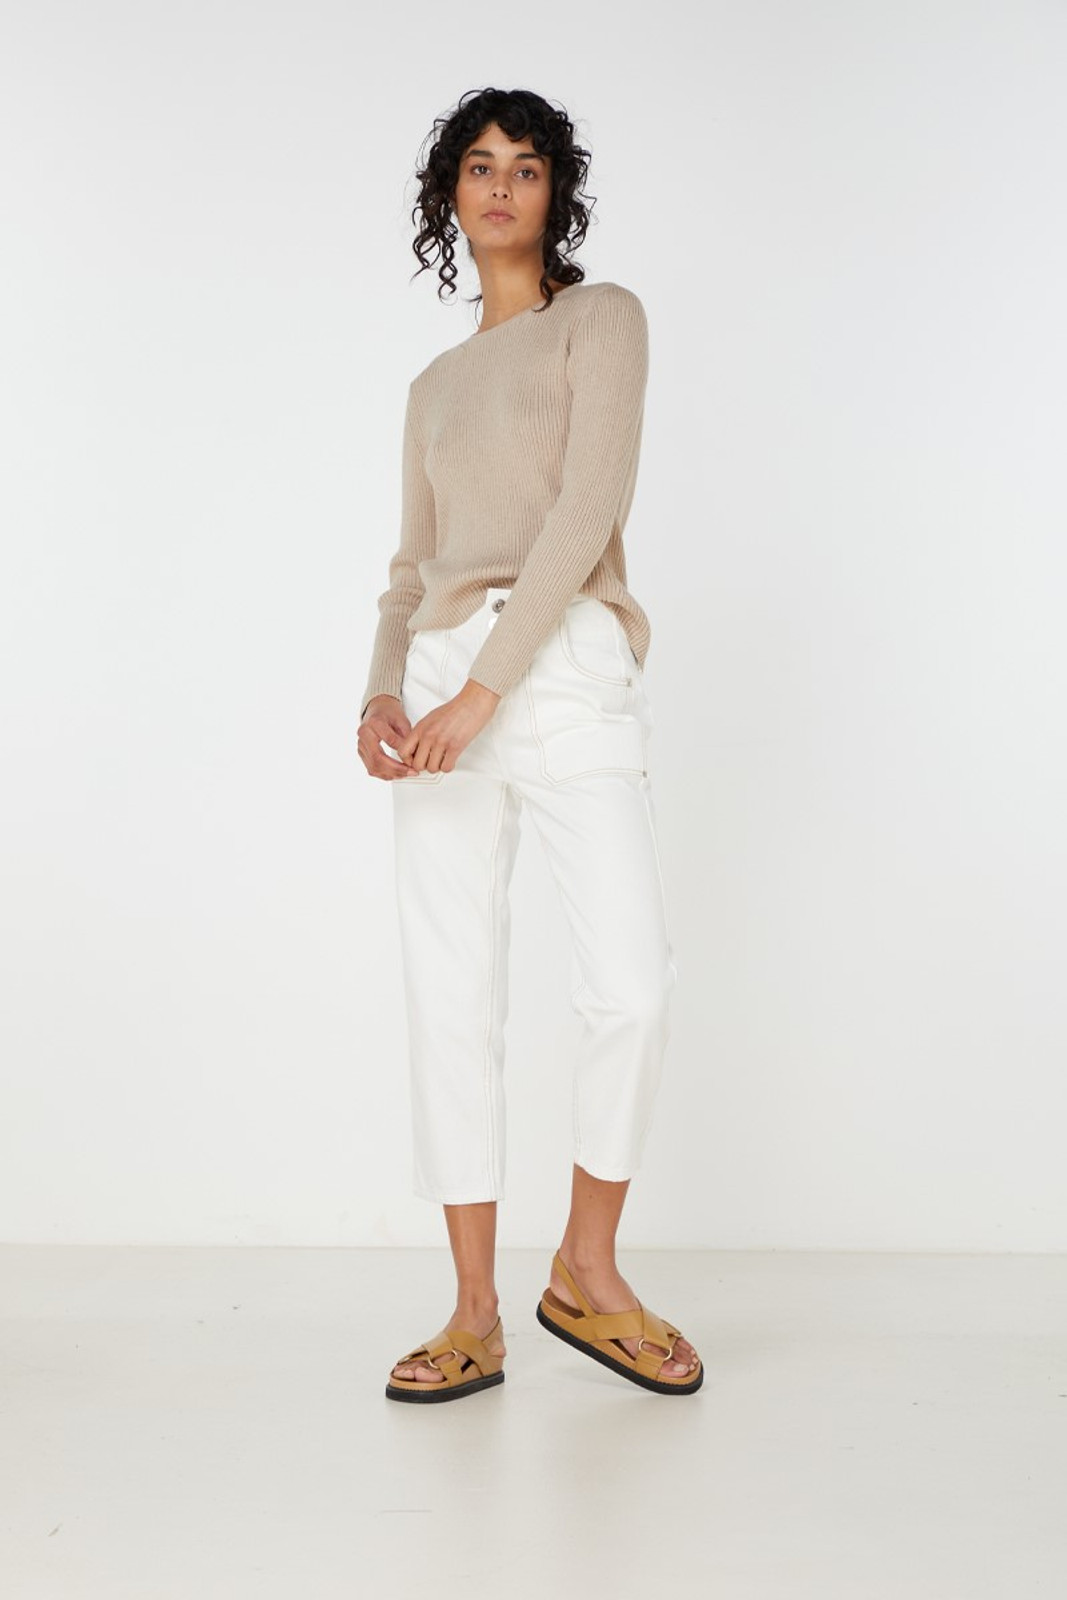 Elka Collective Houston Knit Neutrals  0